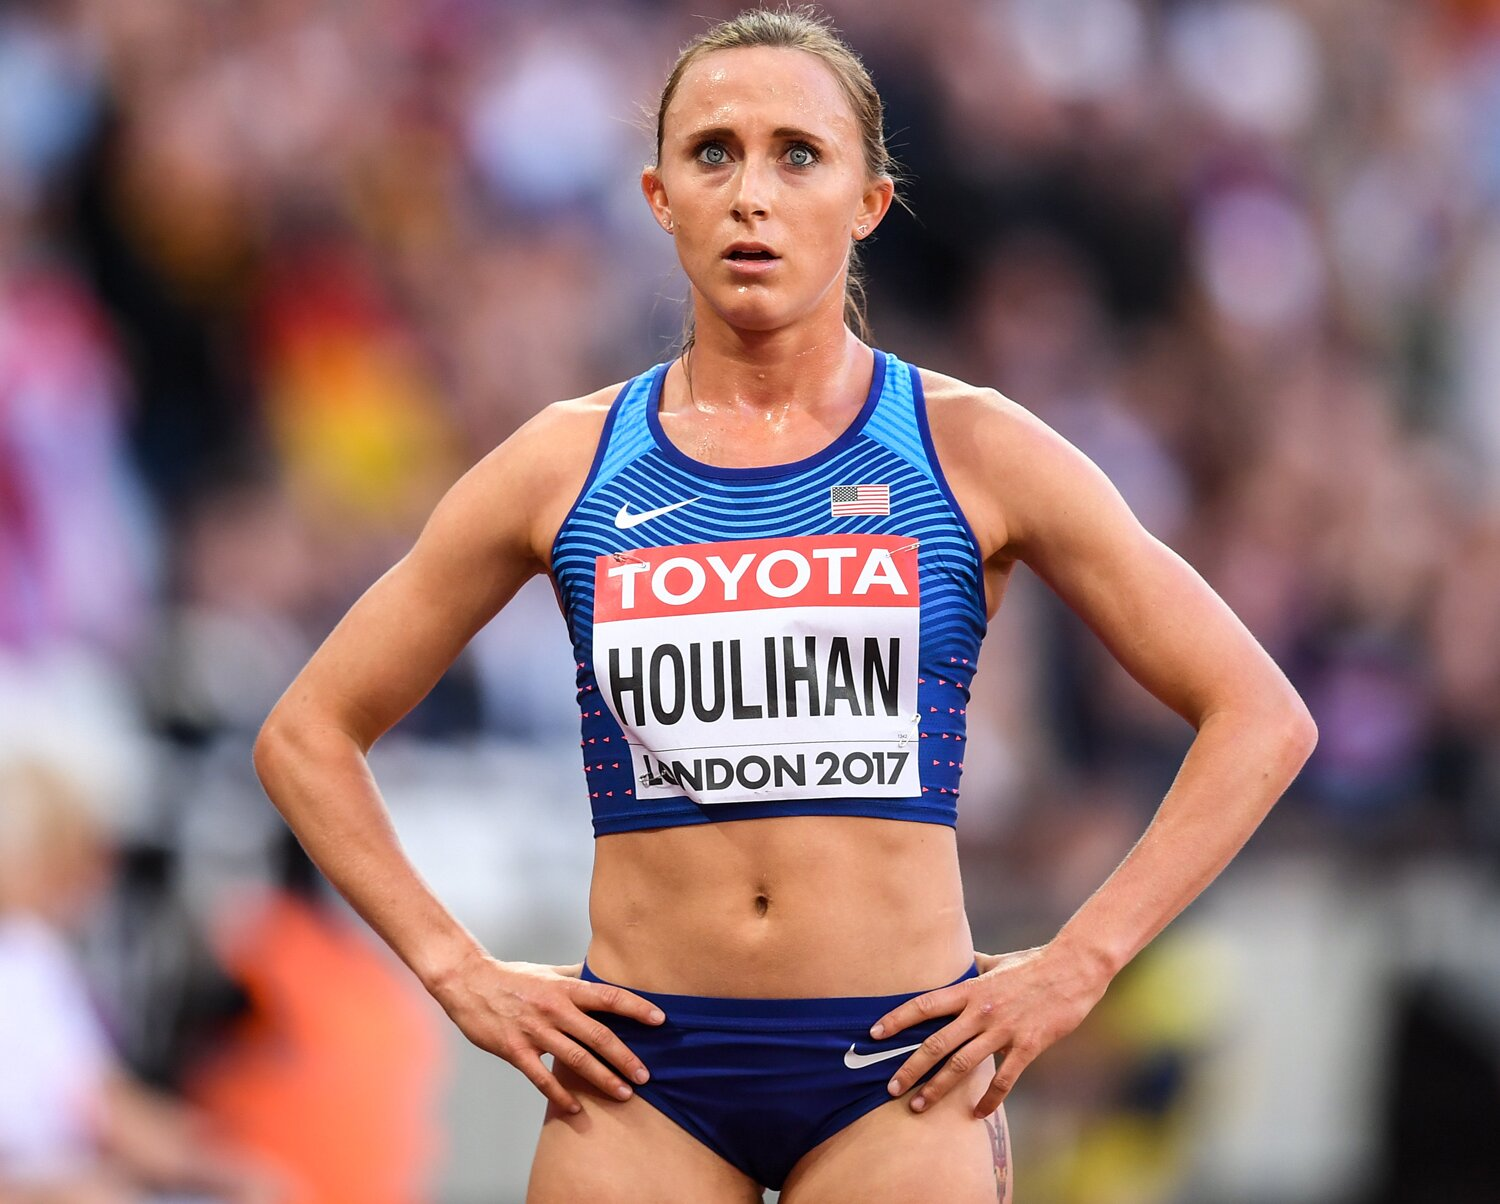 London , United Kingdom - 10 August 2017; Shelby Houlihan of the USA following round one of the Women's 5000m event during day seven of the 16th IAAF World Athletics Championships at the London Stadium in London, England. (Photo By Stephen McCarthy/Sportsfile via Getty Images)